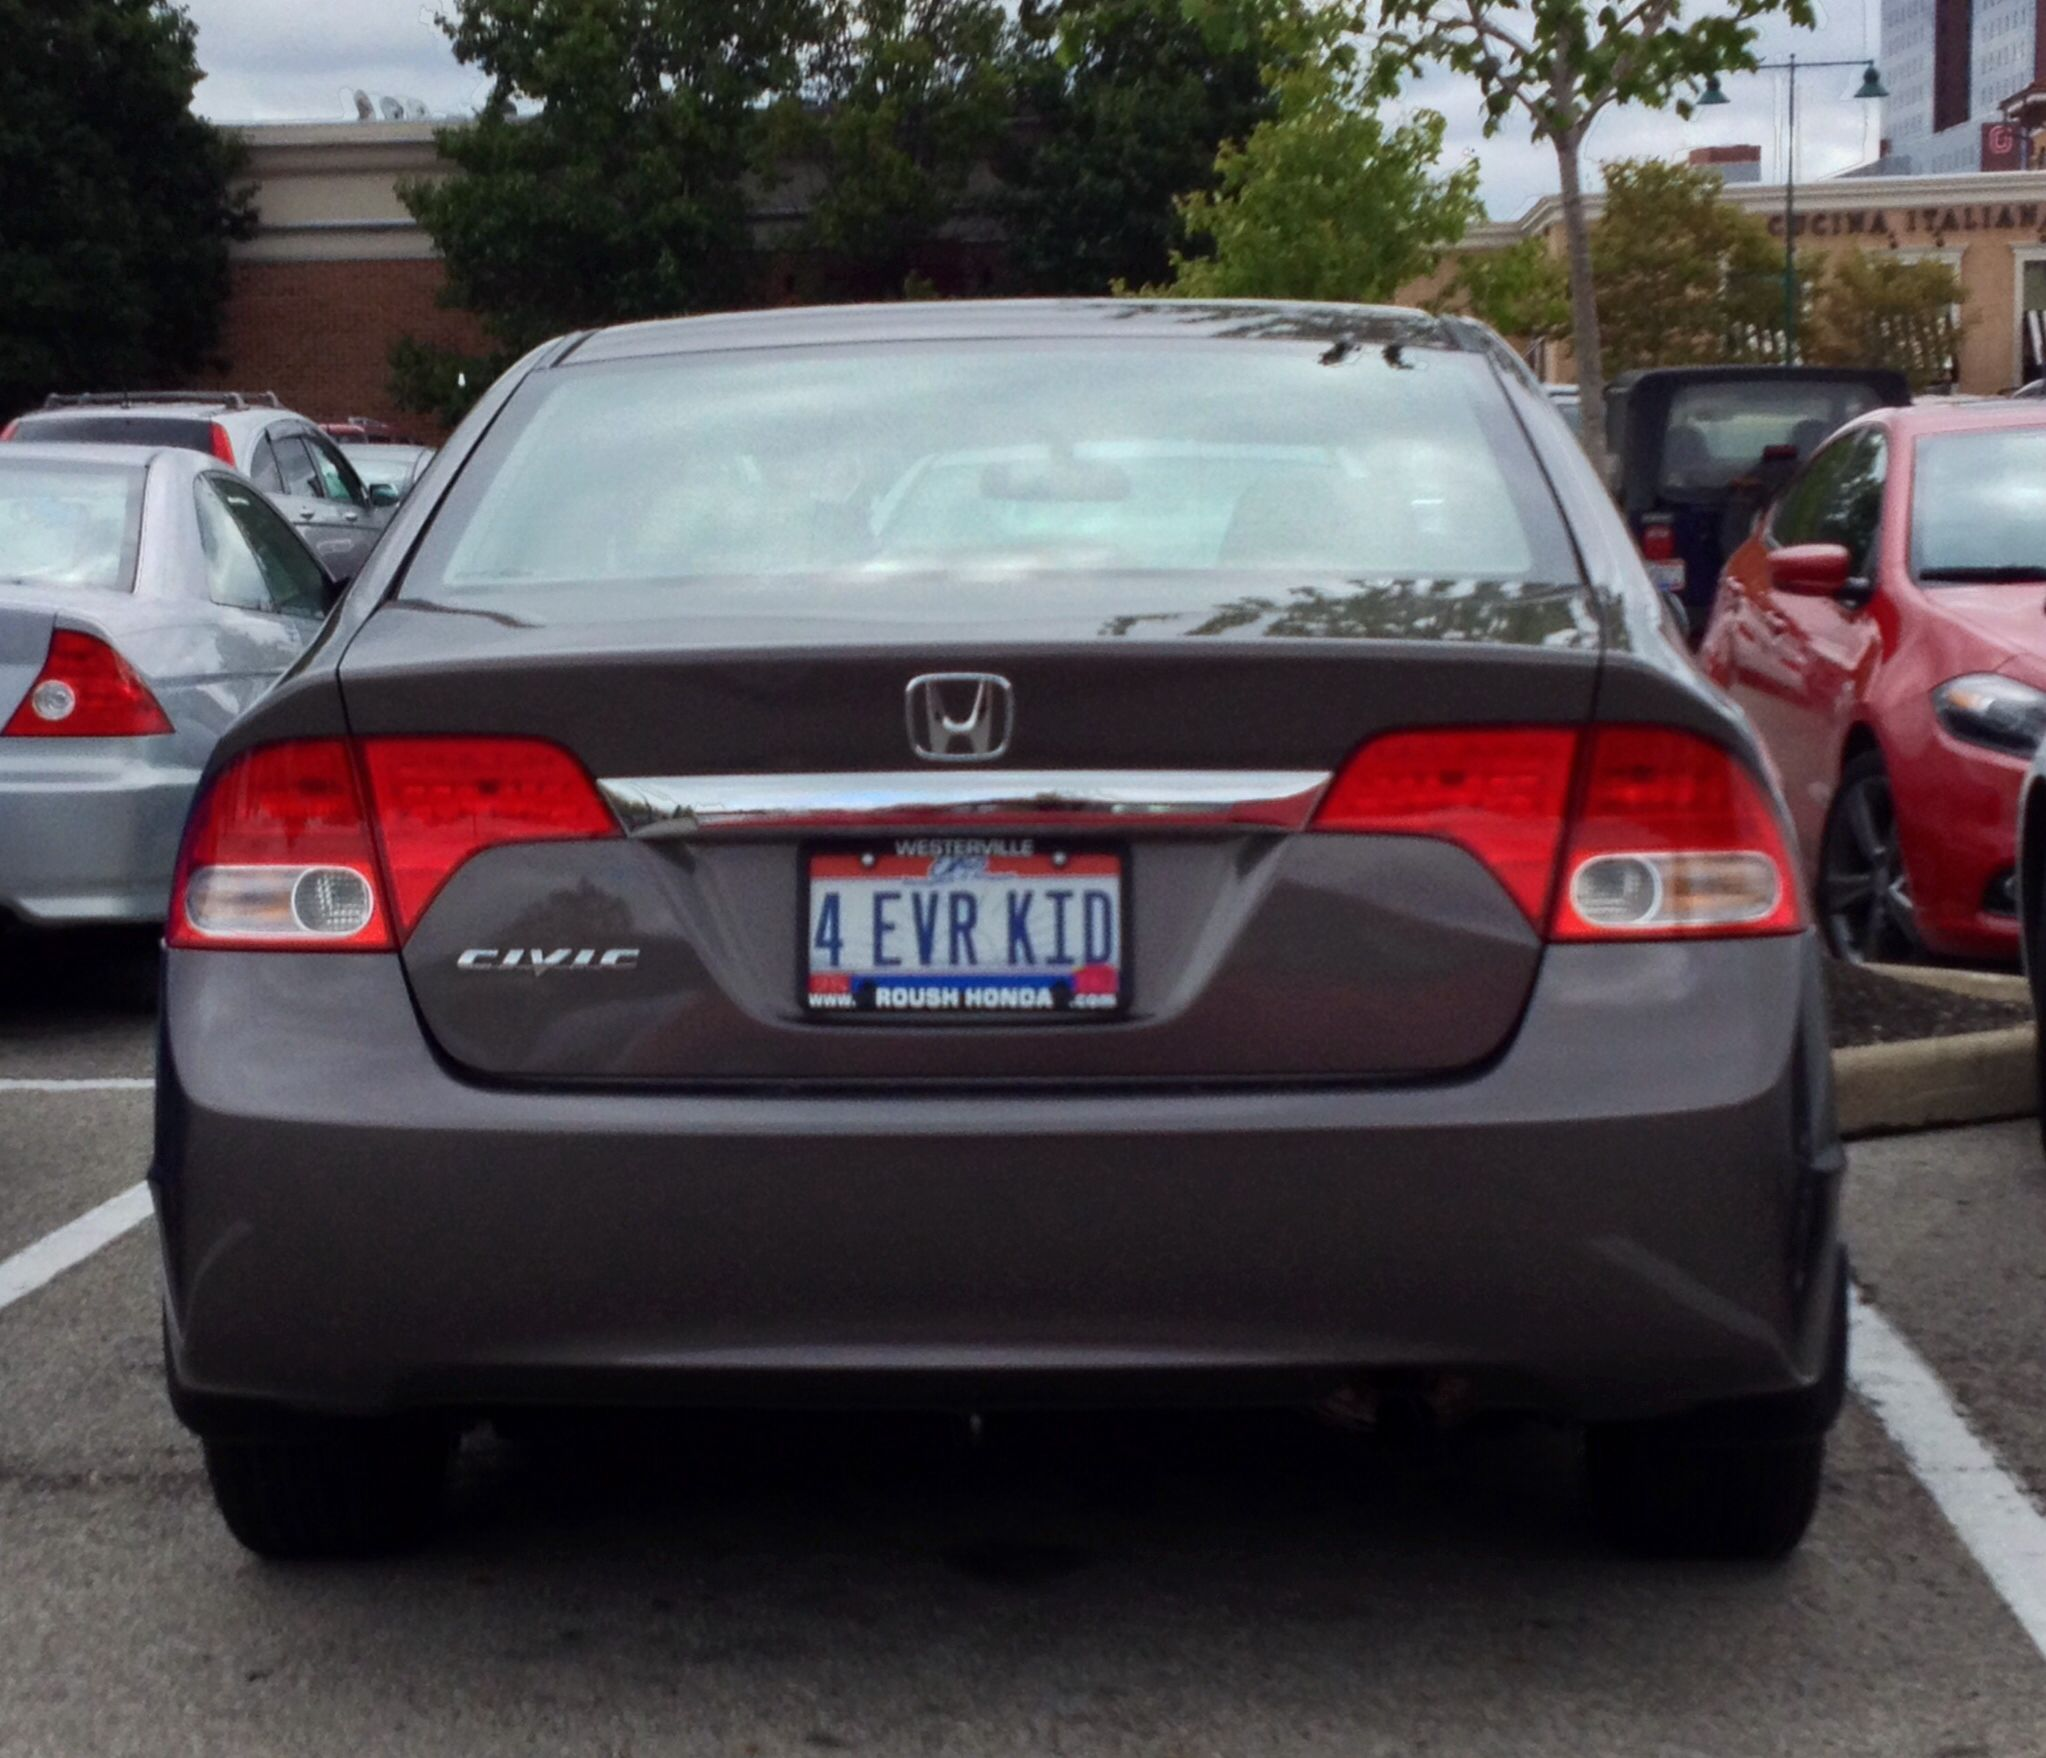 4 EVR KID | License Plates | Pinterest | More Vanity Plate Ideas